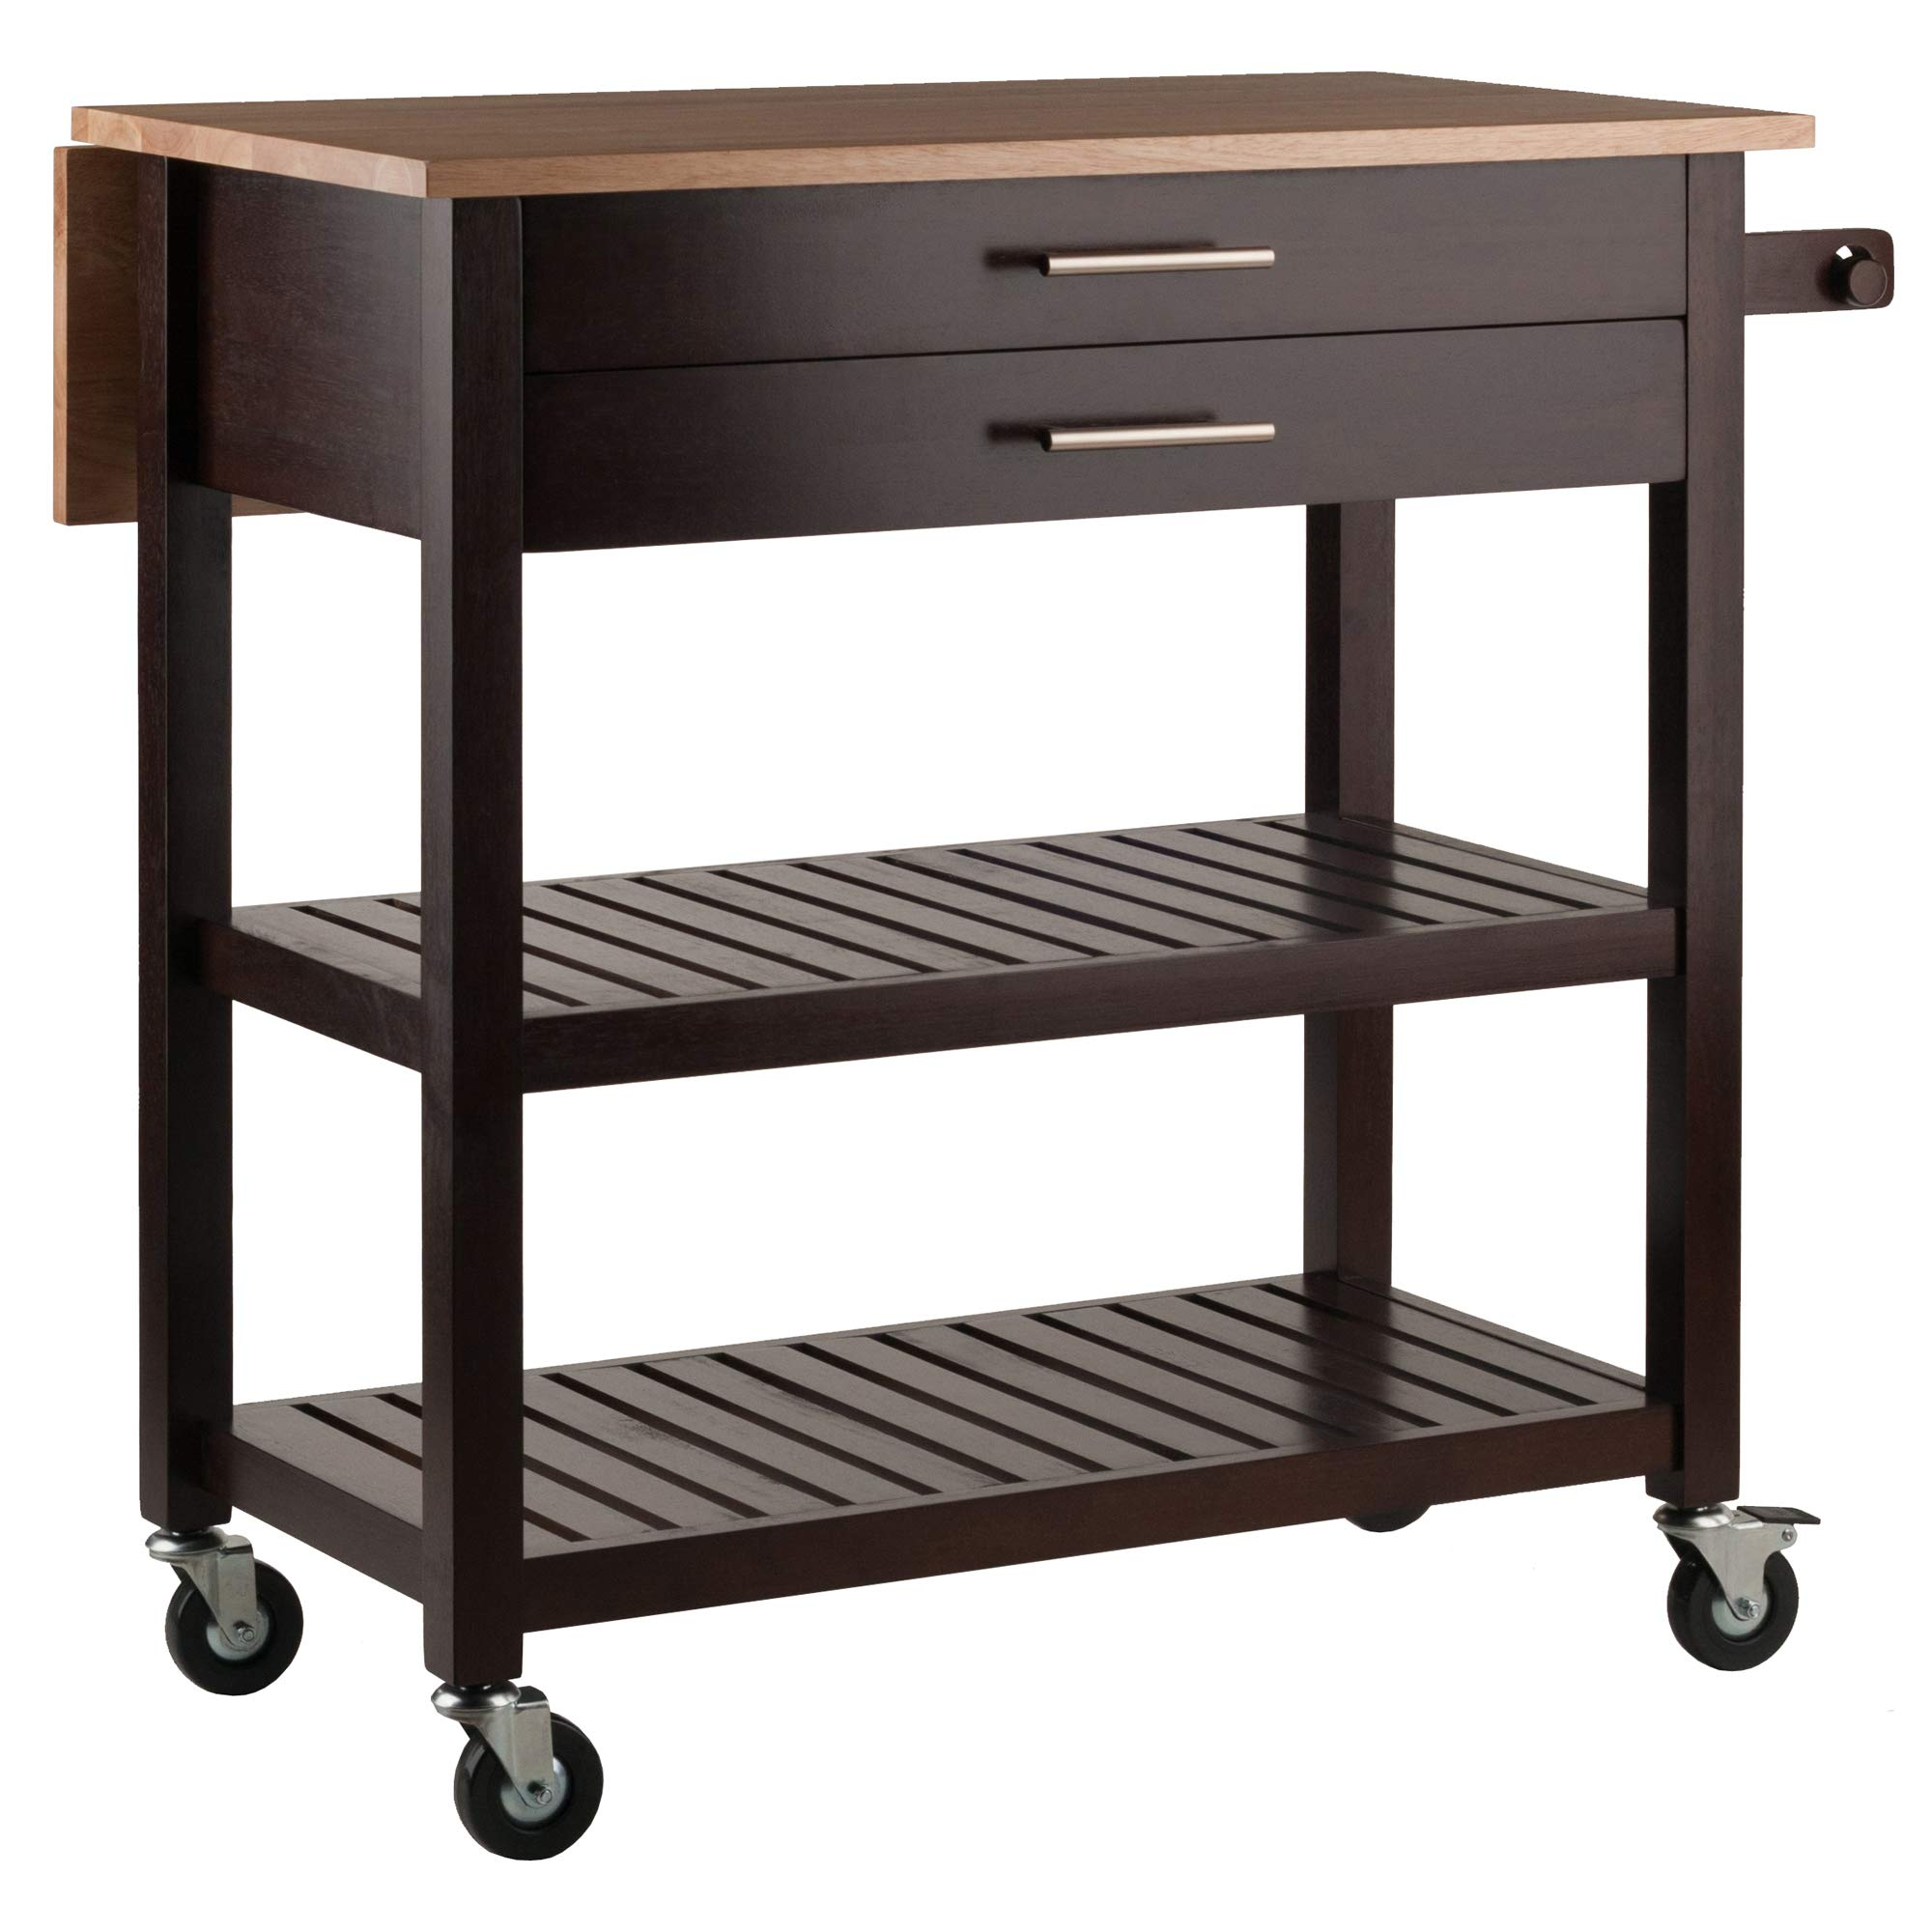 Winsome Wood 40826 Langdon Cart Kitchen, Cappuccino/Natural